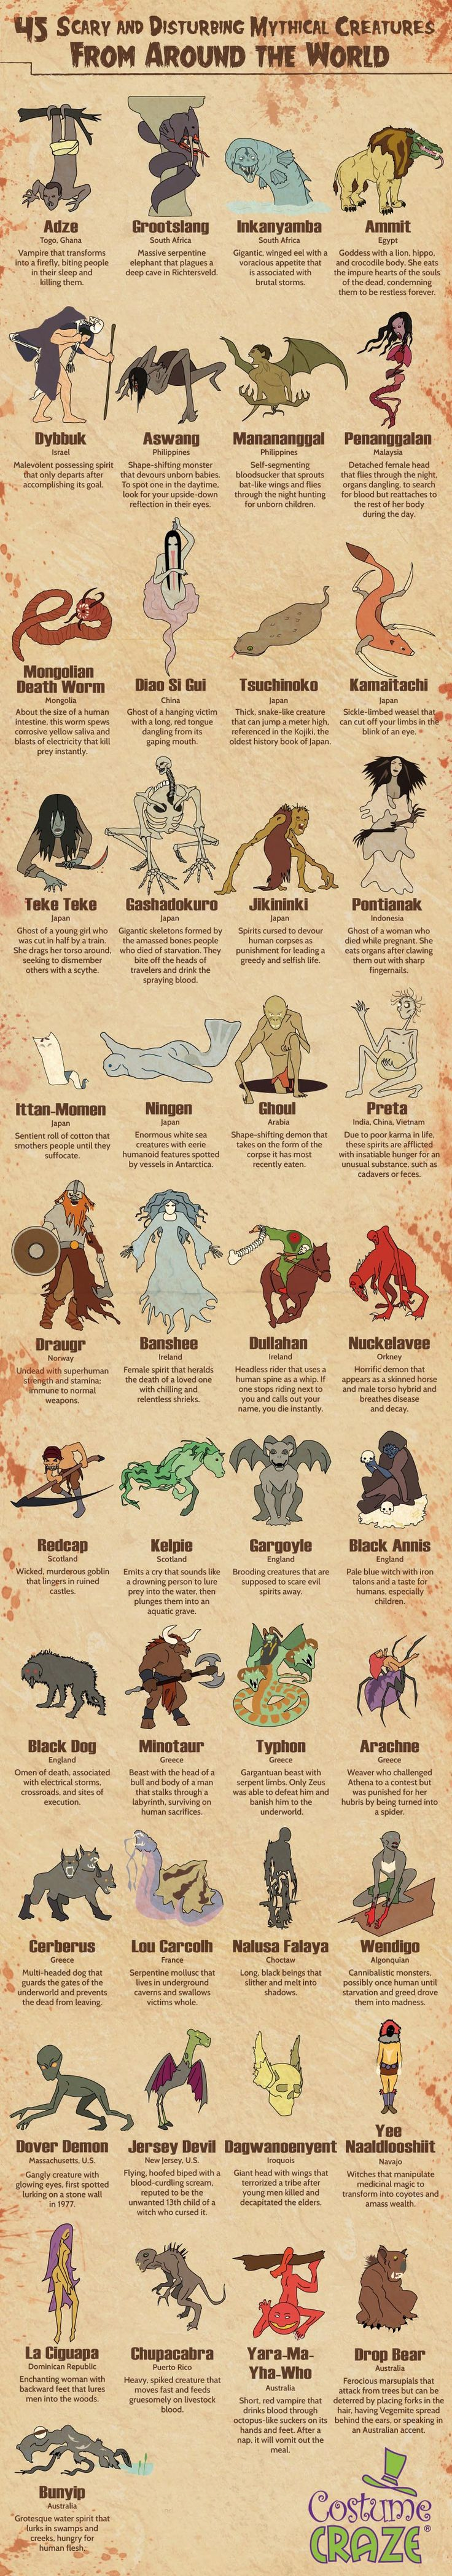 45 Scary and Disturbing Mythical Creatures From Around the World